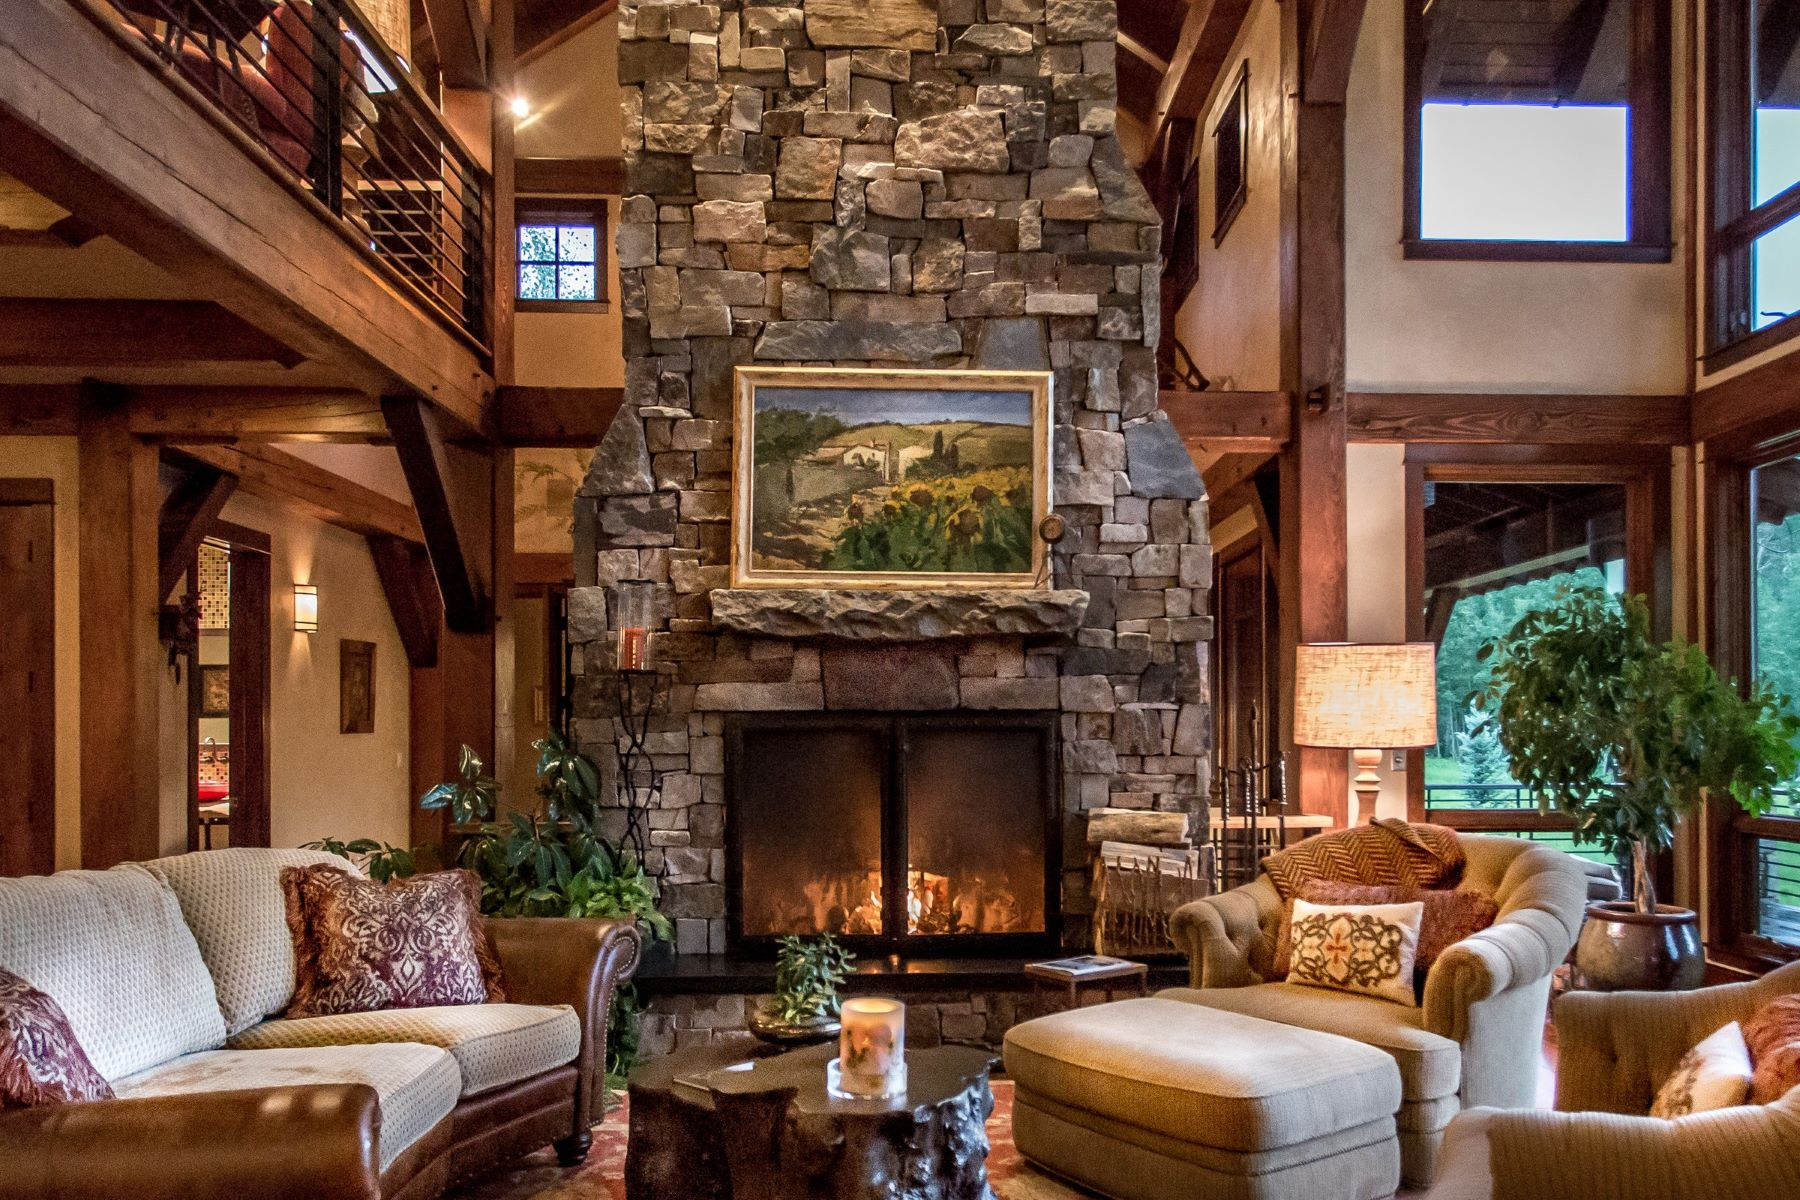 Villa per Vendita alle ore Elkins Meadow Masterpiece 2890 Bucks Path Steamboat Springs, Colorado, 80487 Stati Uniti